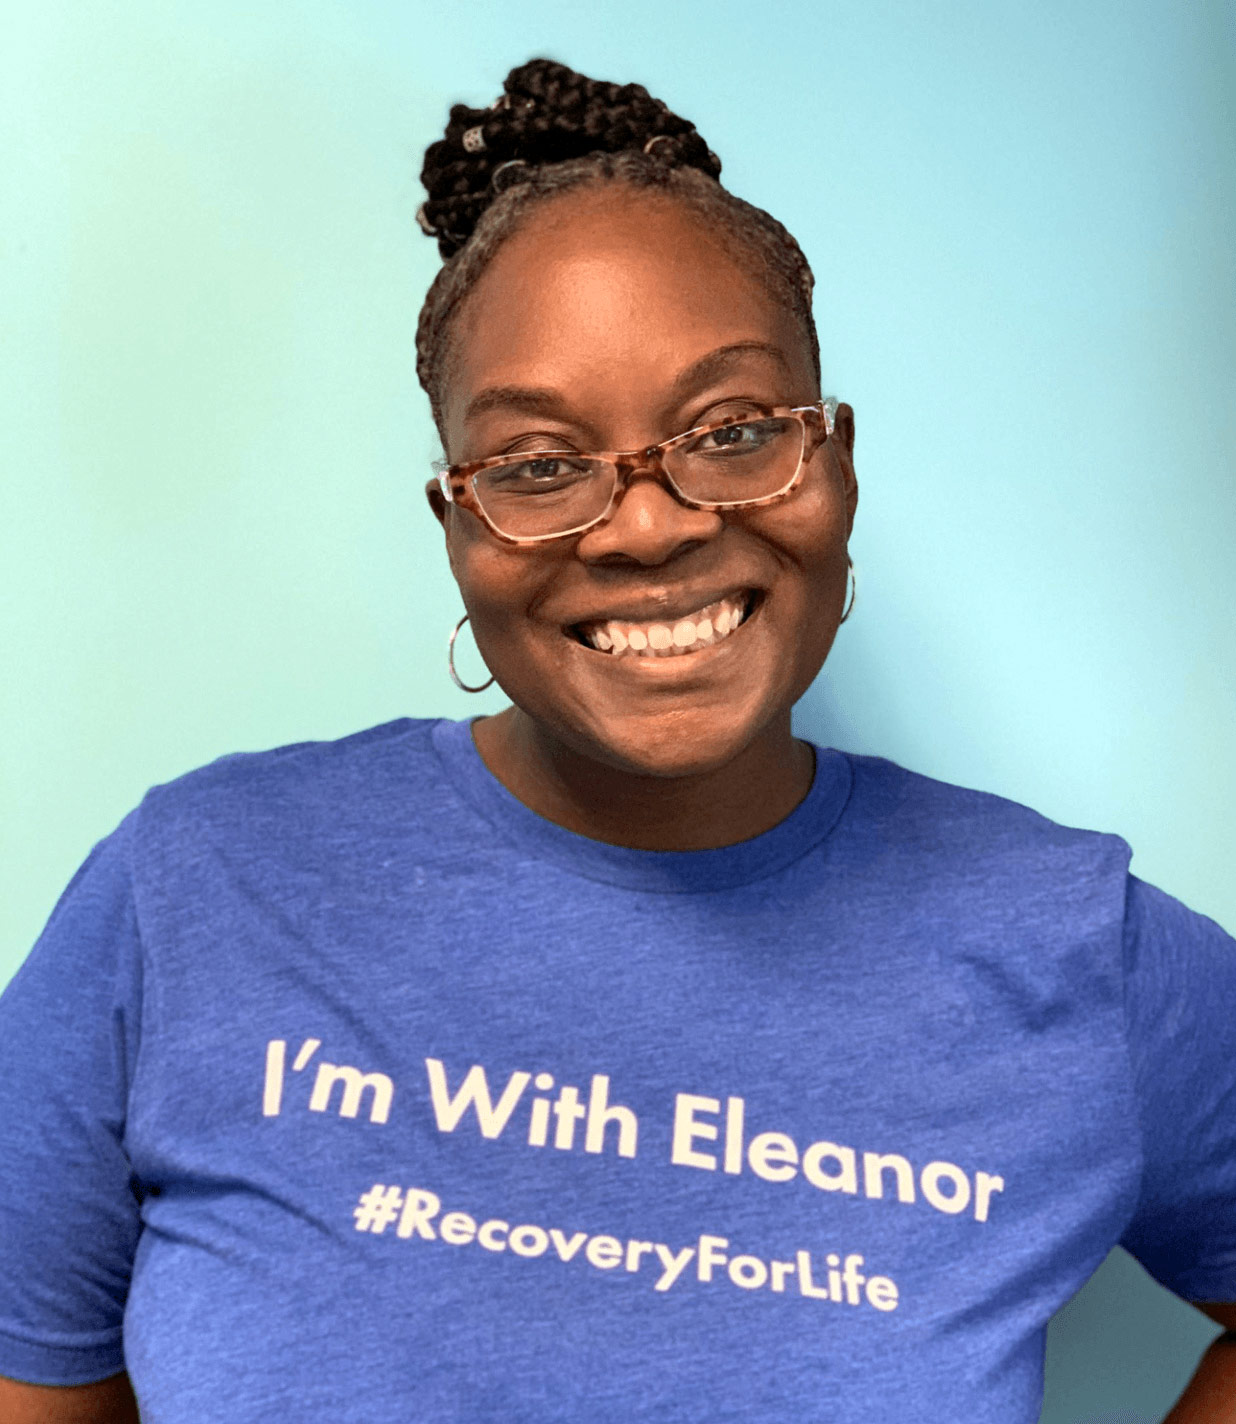 Eleanor-Health-Addiction-Recovery-Platform-Opioid-Substance-Disorder-Integrated-Evidence-Outpatient-Group-Medication-Psychiatric-Personalized-Therapy-Life-Community-Care.jpg